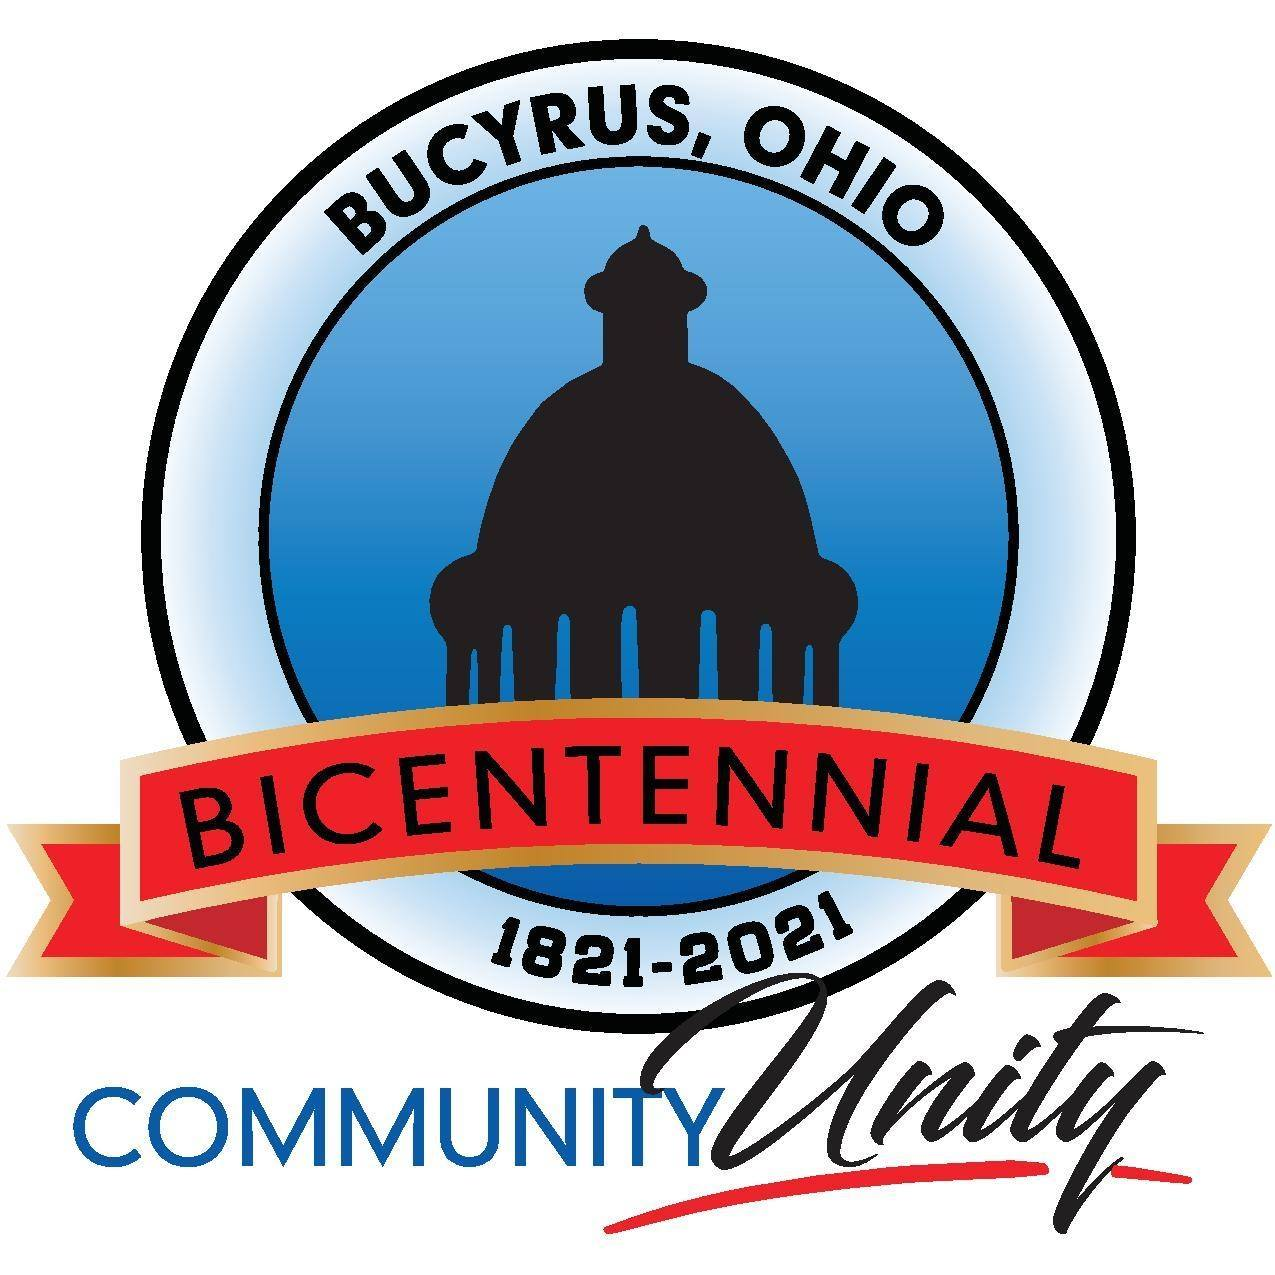 Visit the Bucyrus Bicentennial Celebration Website